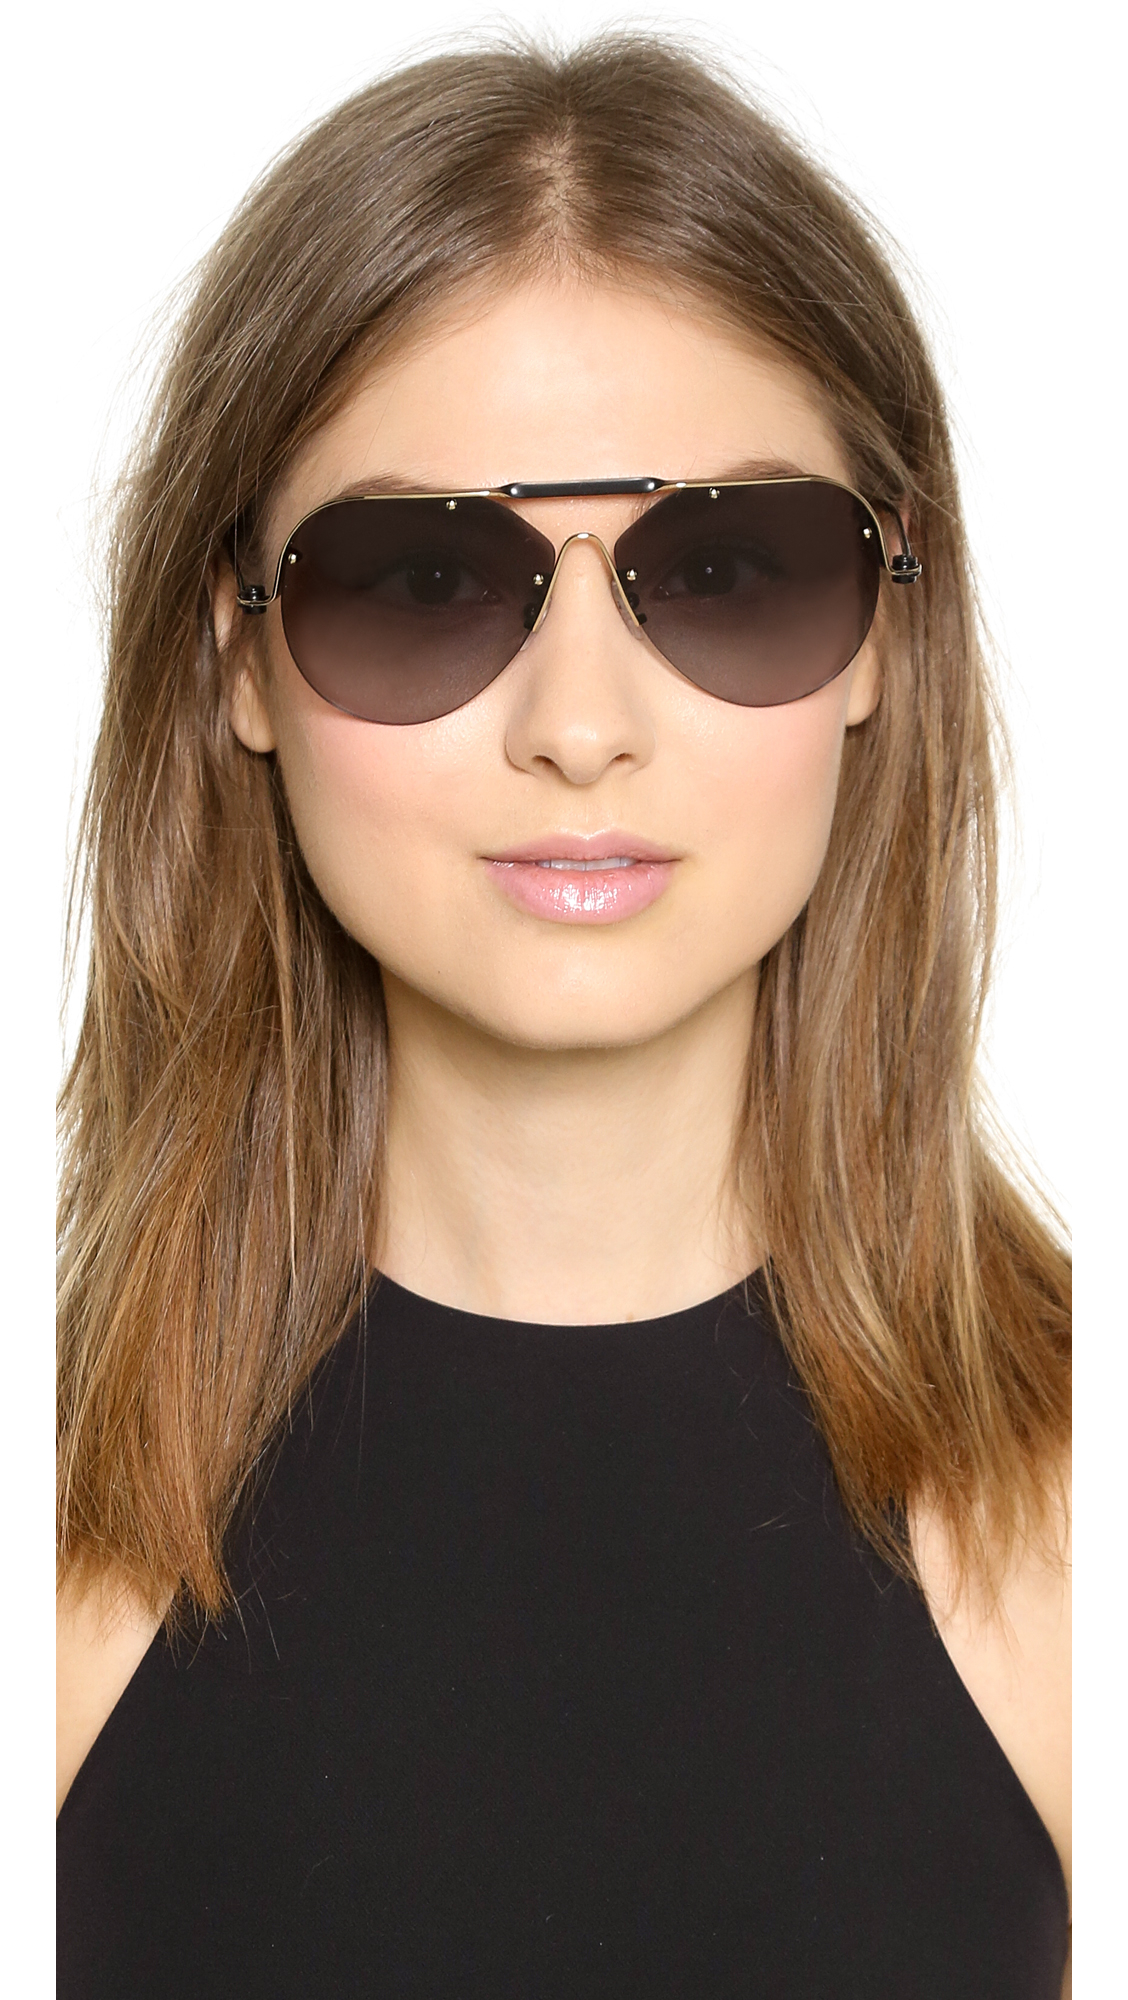 700623a9d94 Lyst - Givenchy Aviator Sunglasses - Shiny Grey Gold Violet in Black